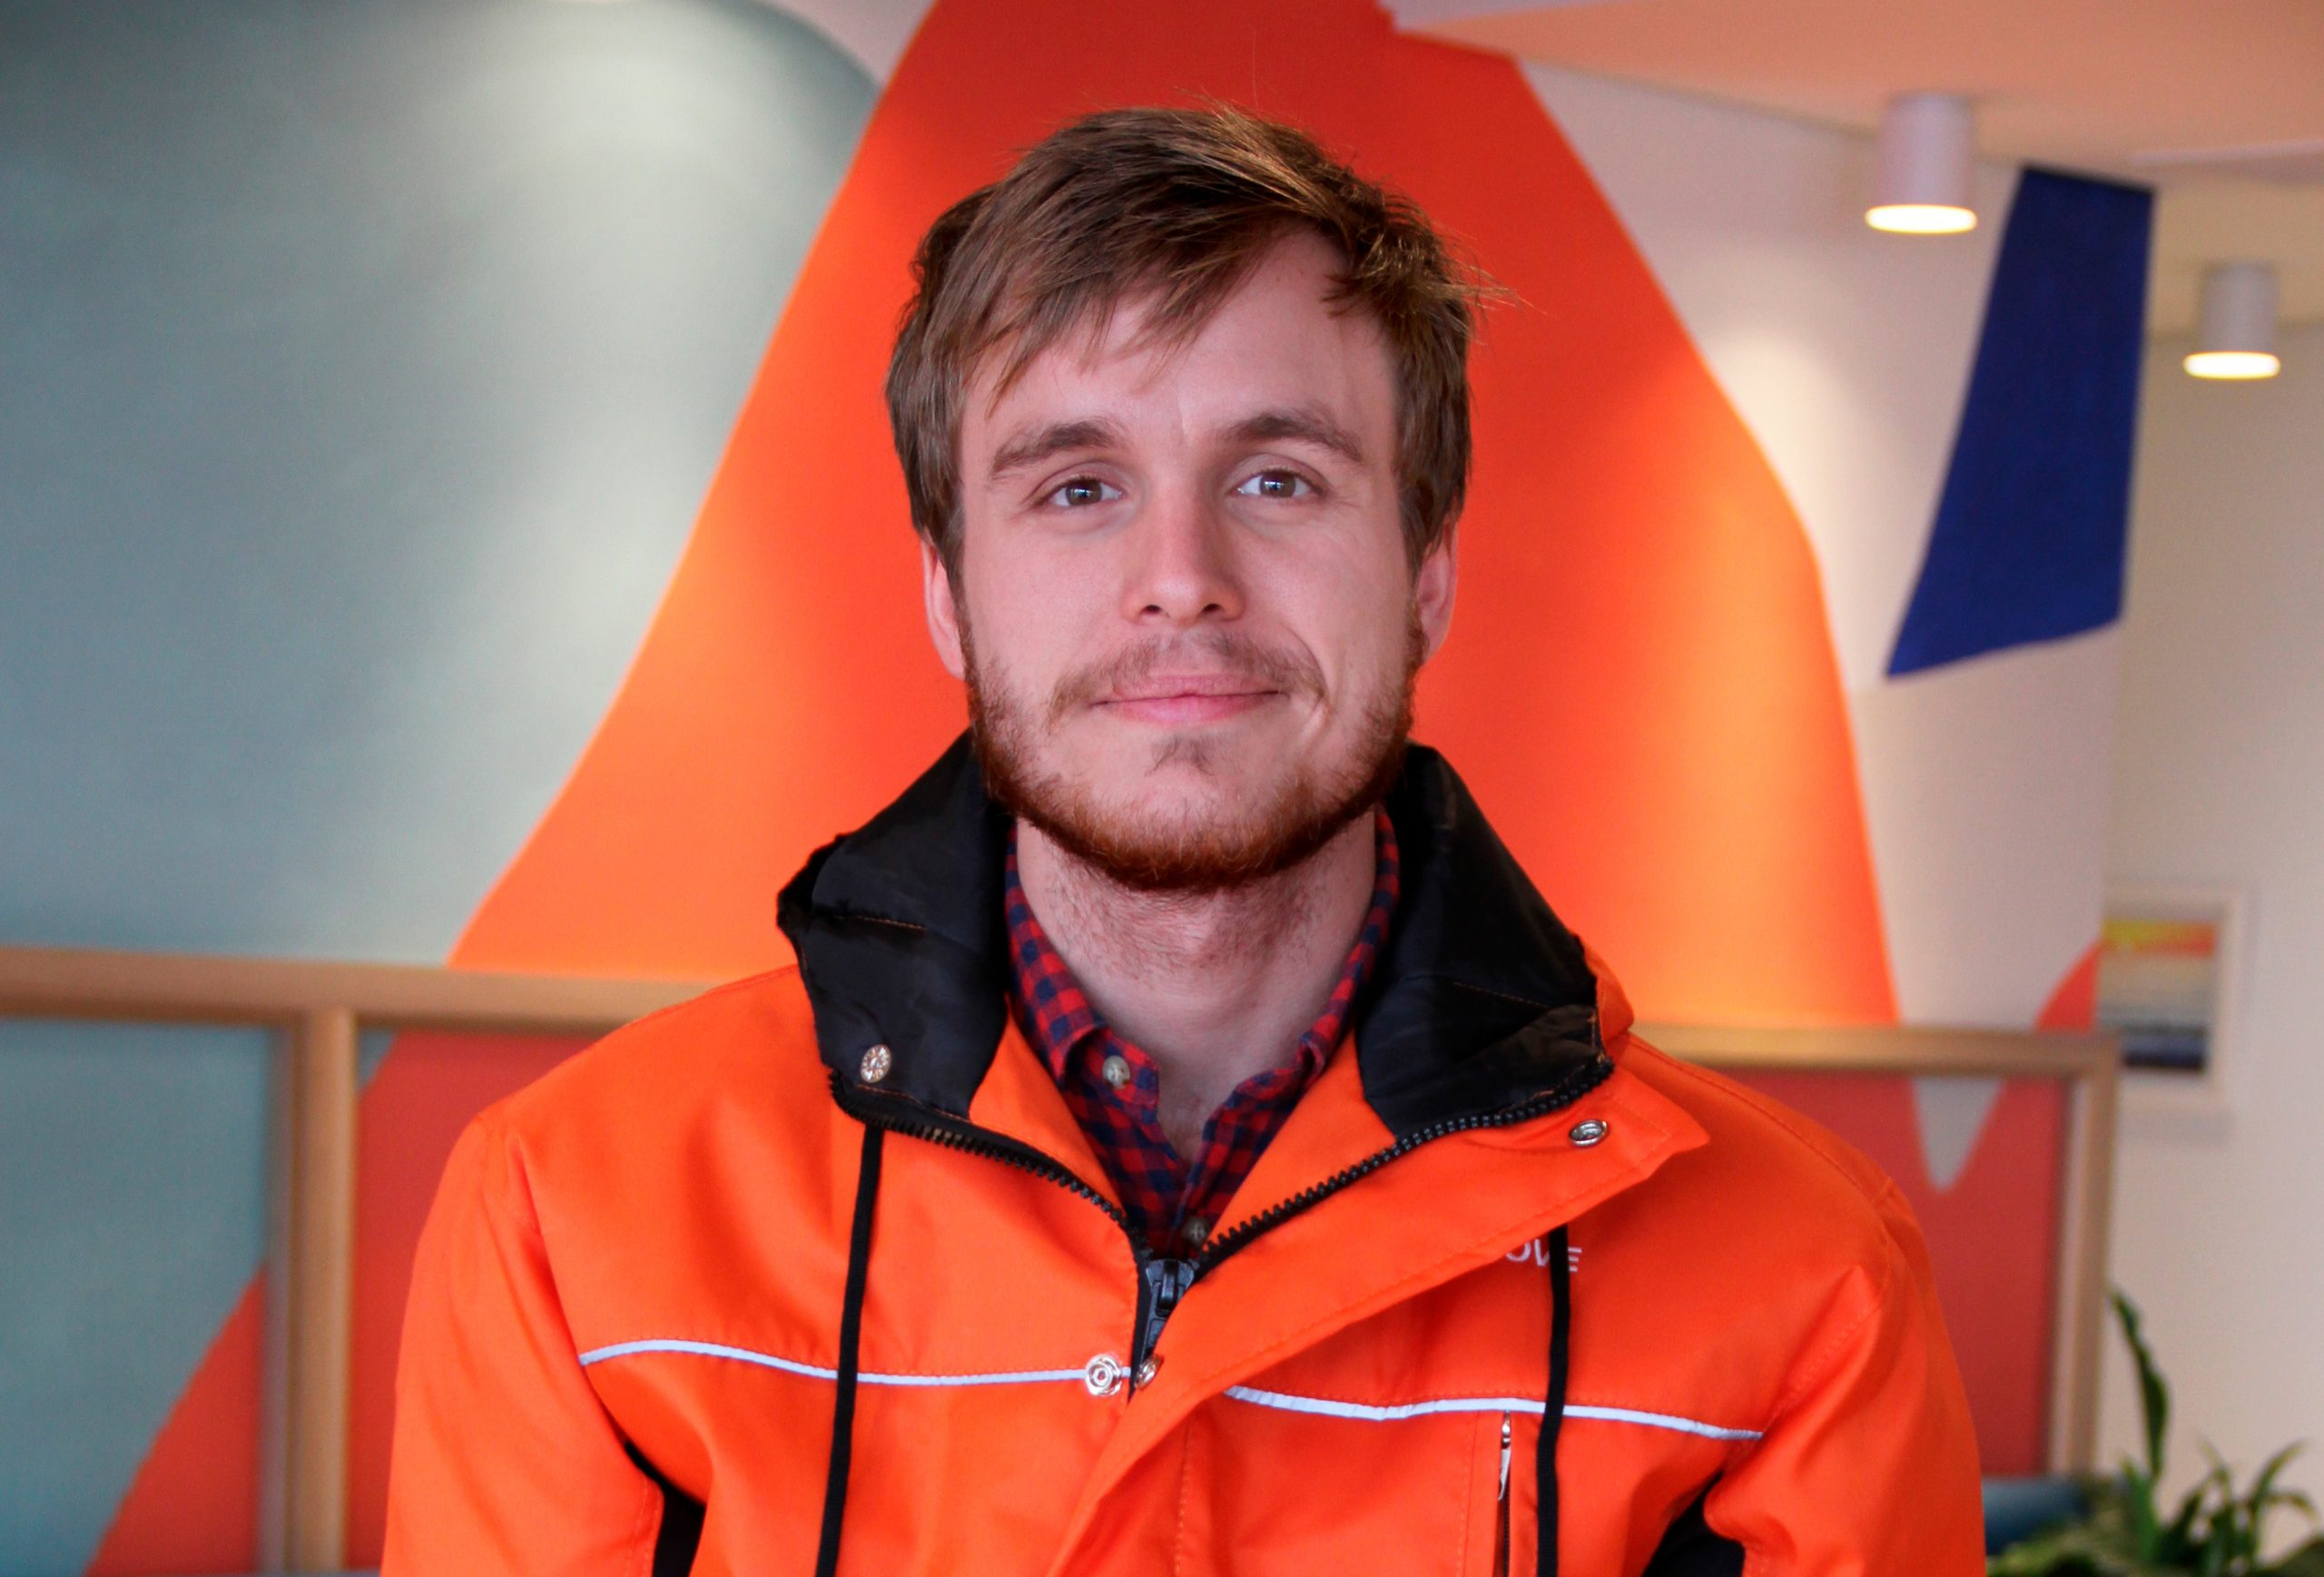 Phillipe Rambaud, Business Expansion Manager at logistics startup Lalamove.